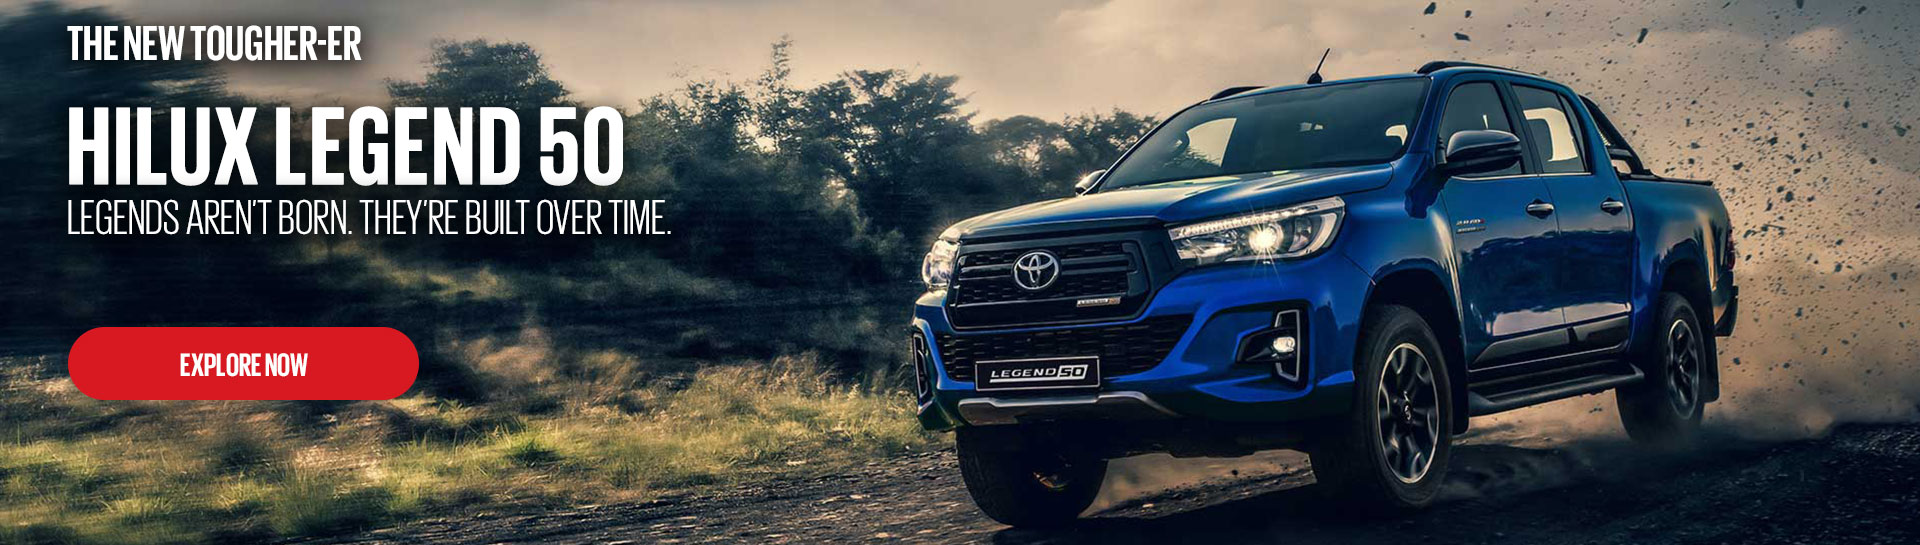 The Hilux Legend 50 Click to Explore